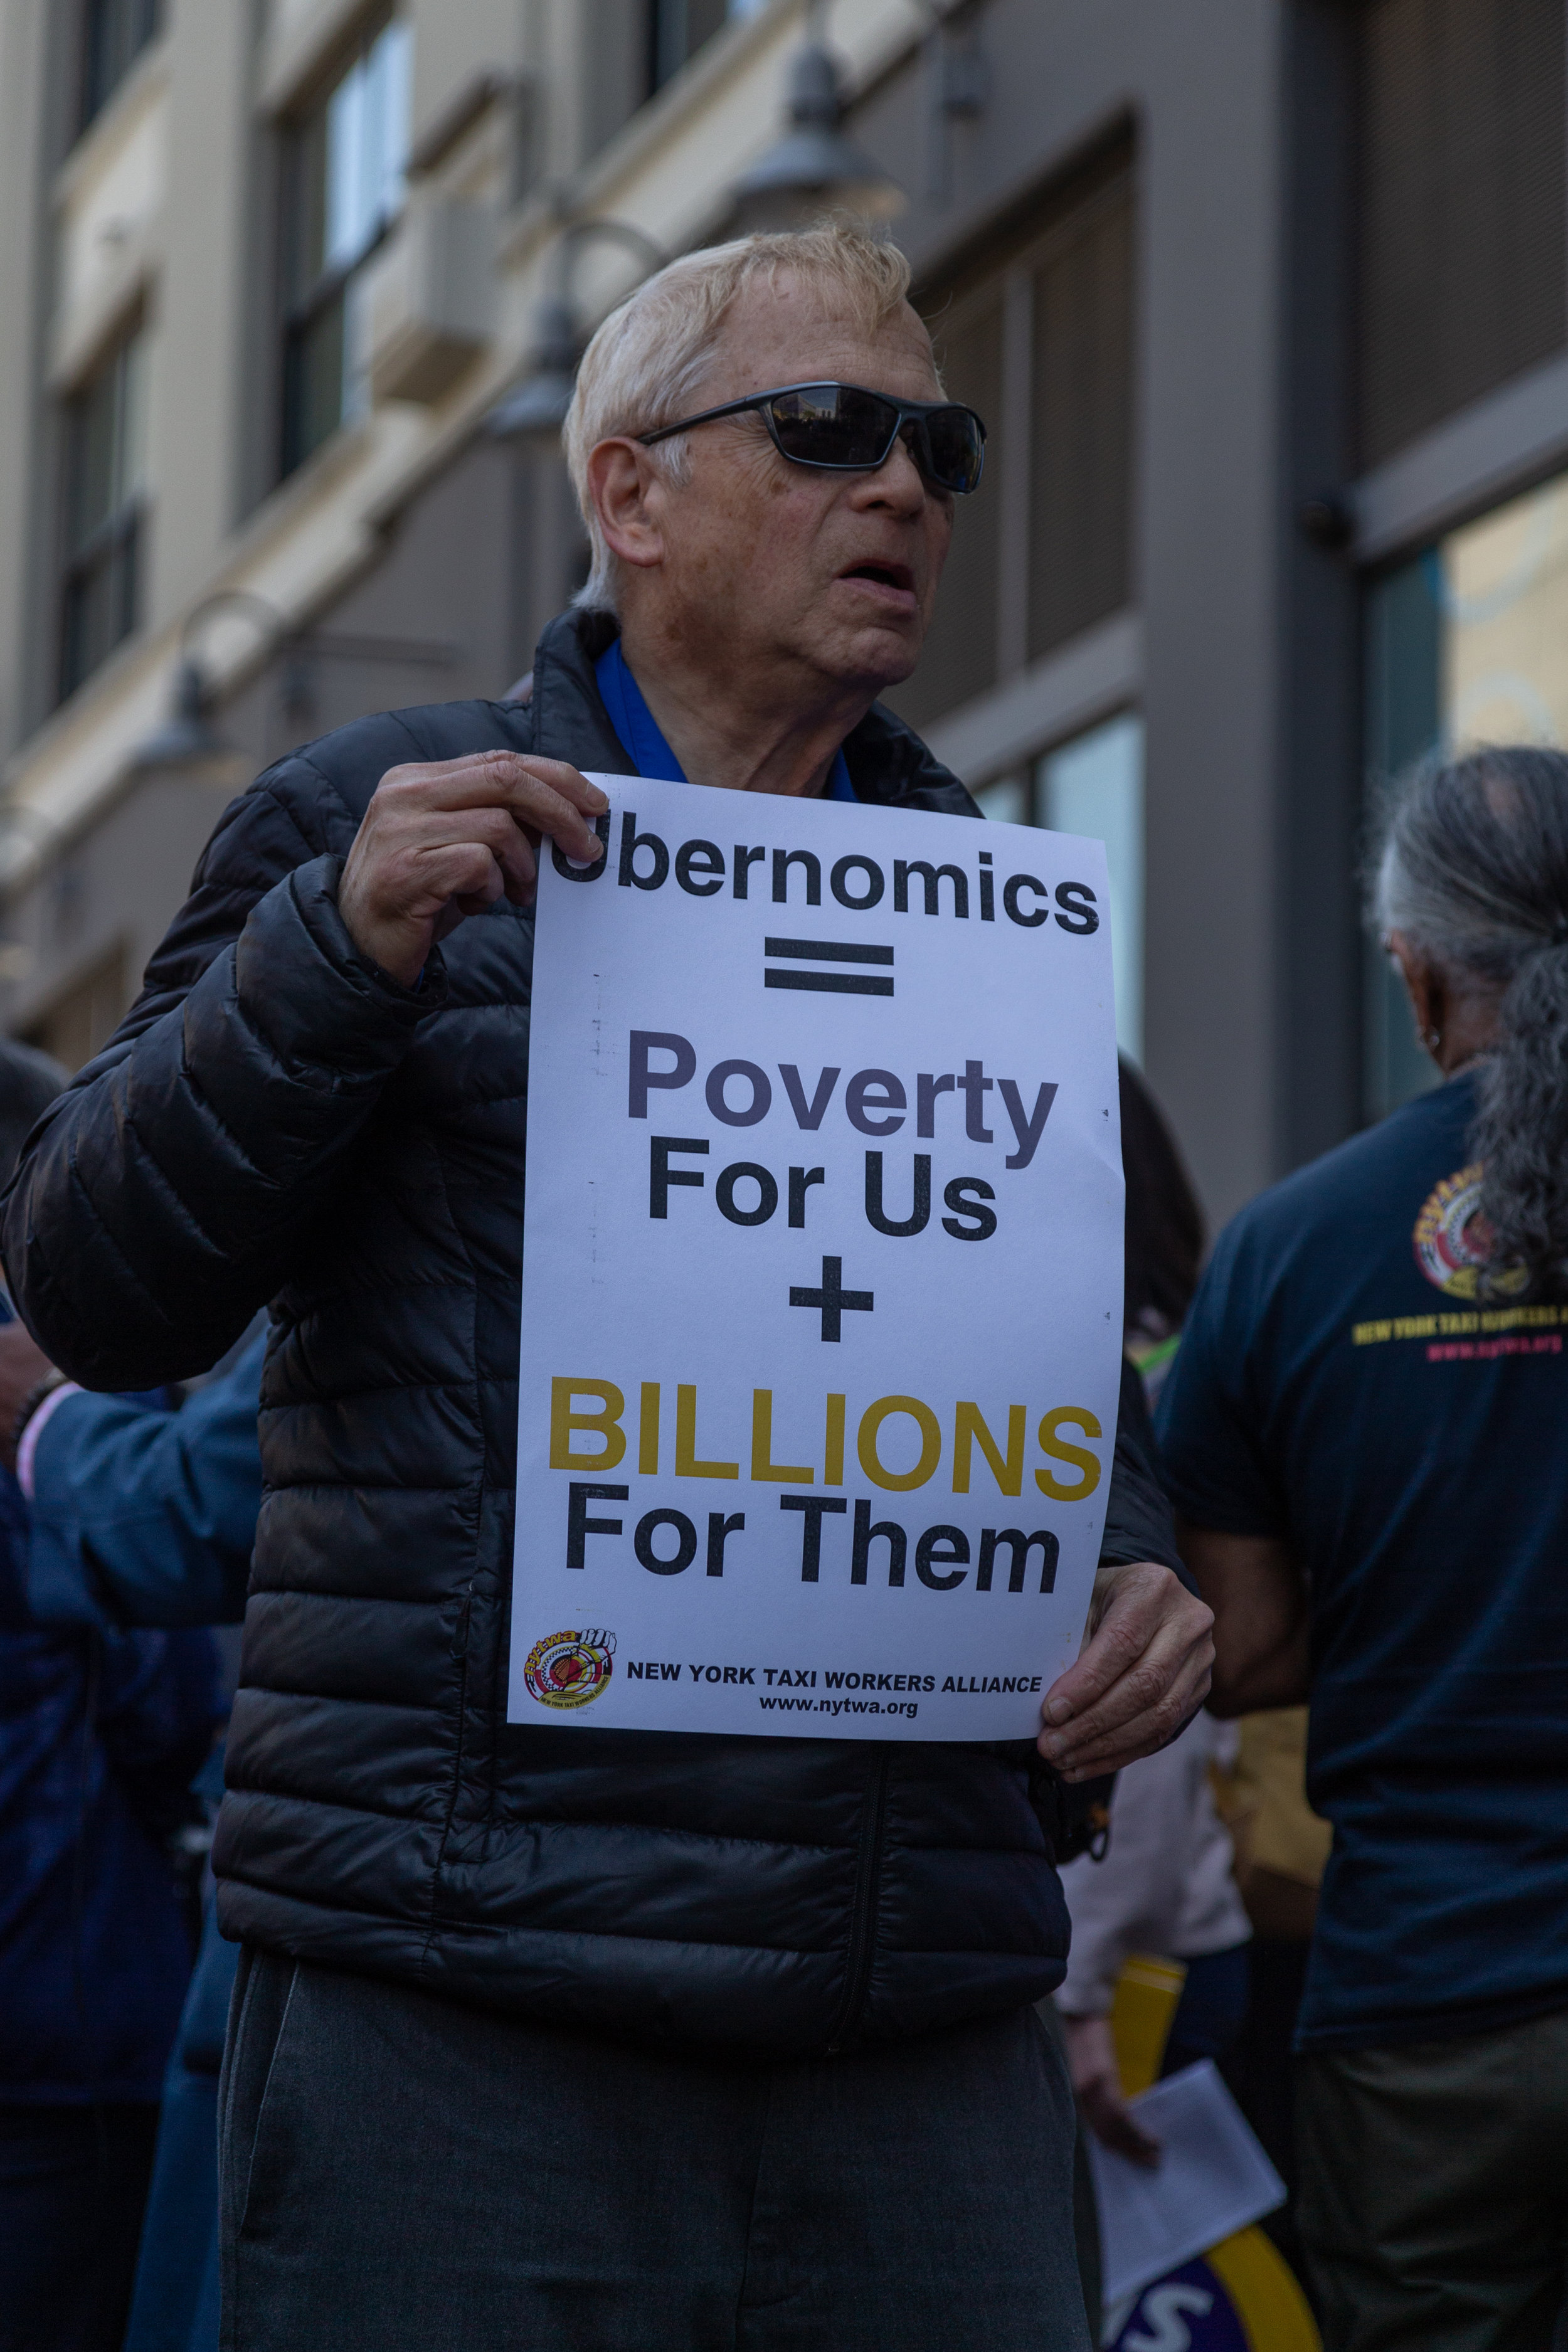 A demonstrator holds a sign at the rally criticizing Uber.